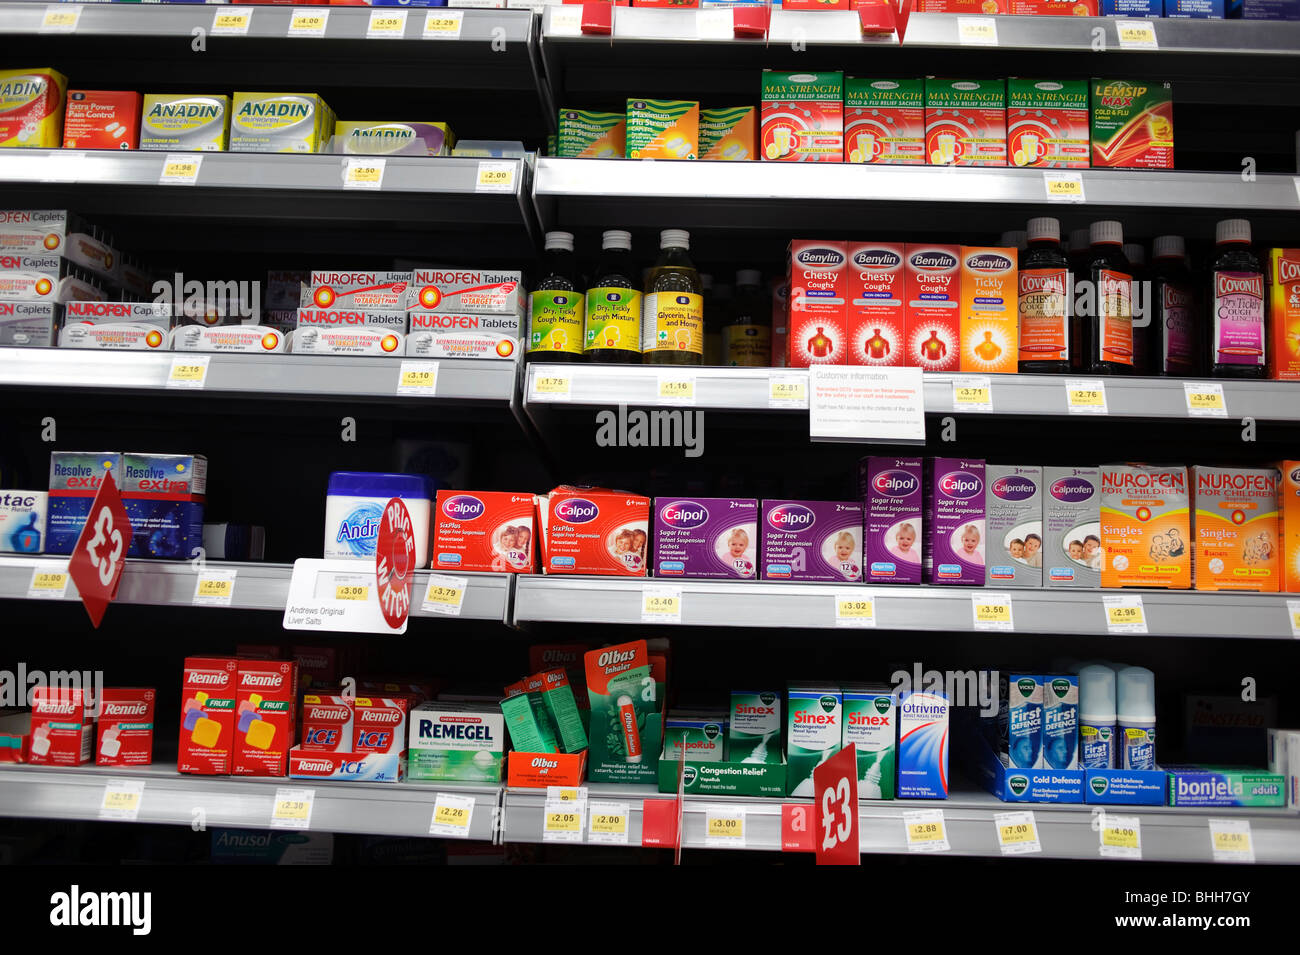 Over the counter non-prescription common cold and flu remedies on sale on the shelves at Co-Op supermarket, UK - Stock Image